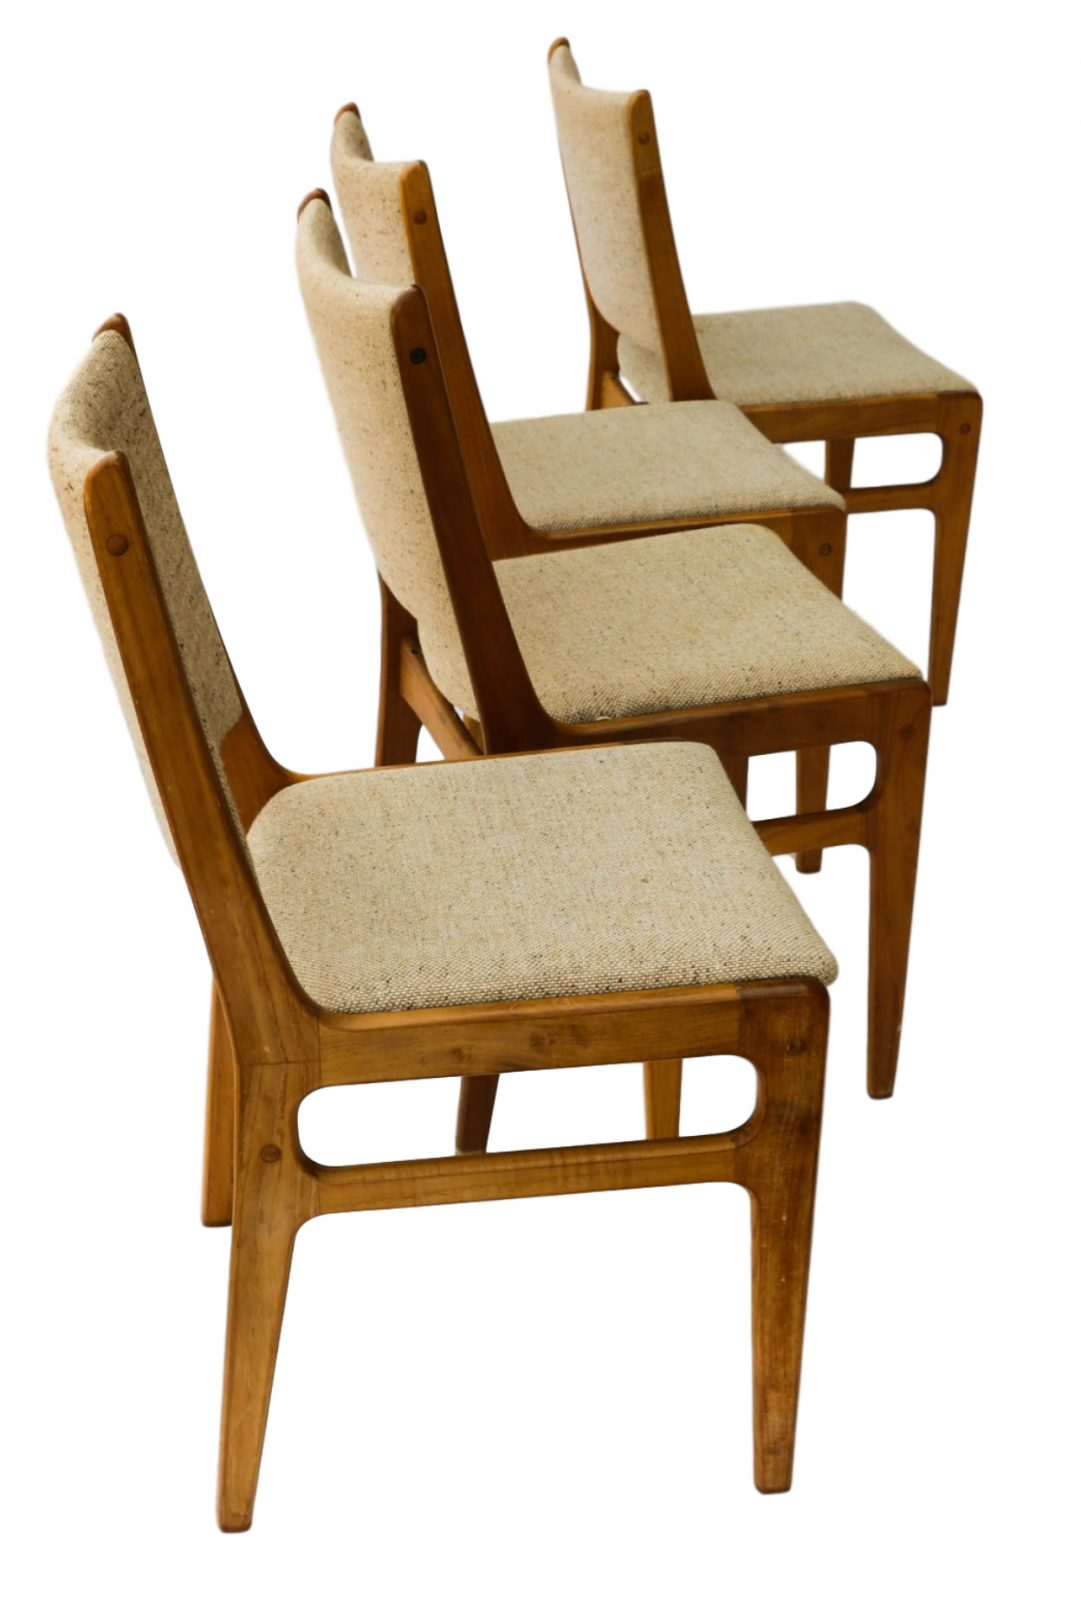 Danish Teak Dining Chairs Vintage D Scan Danish Teak Dining Chairs Four